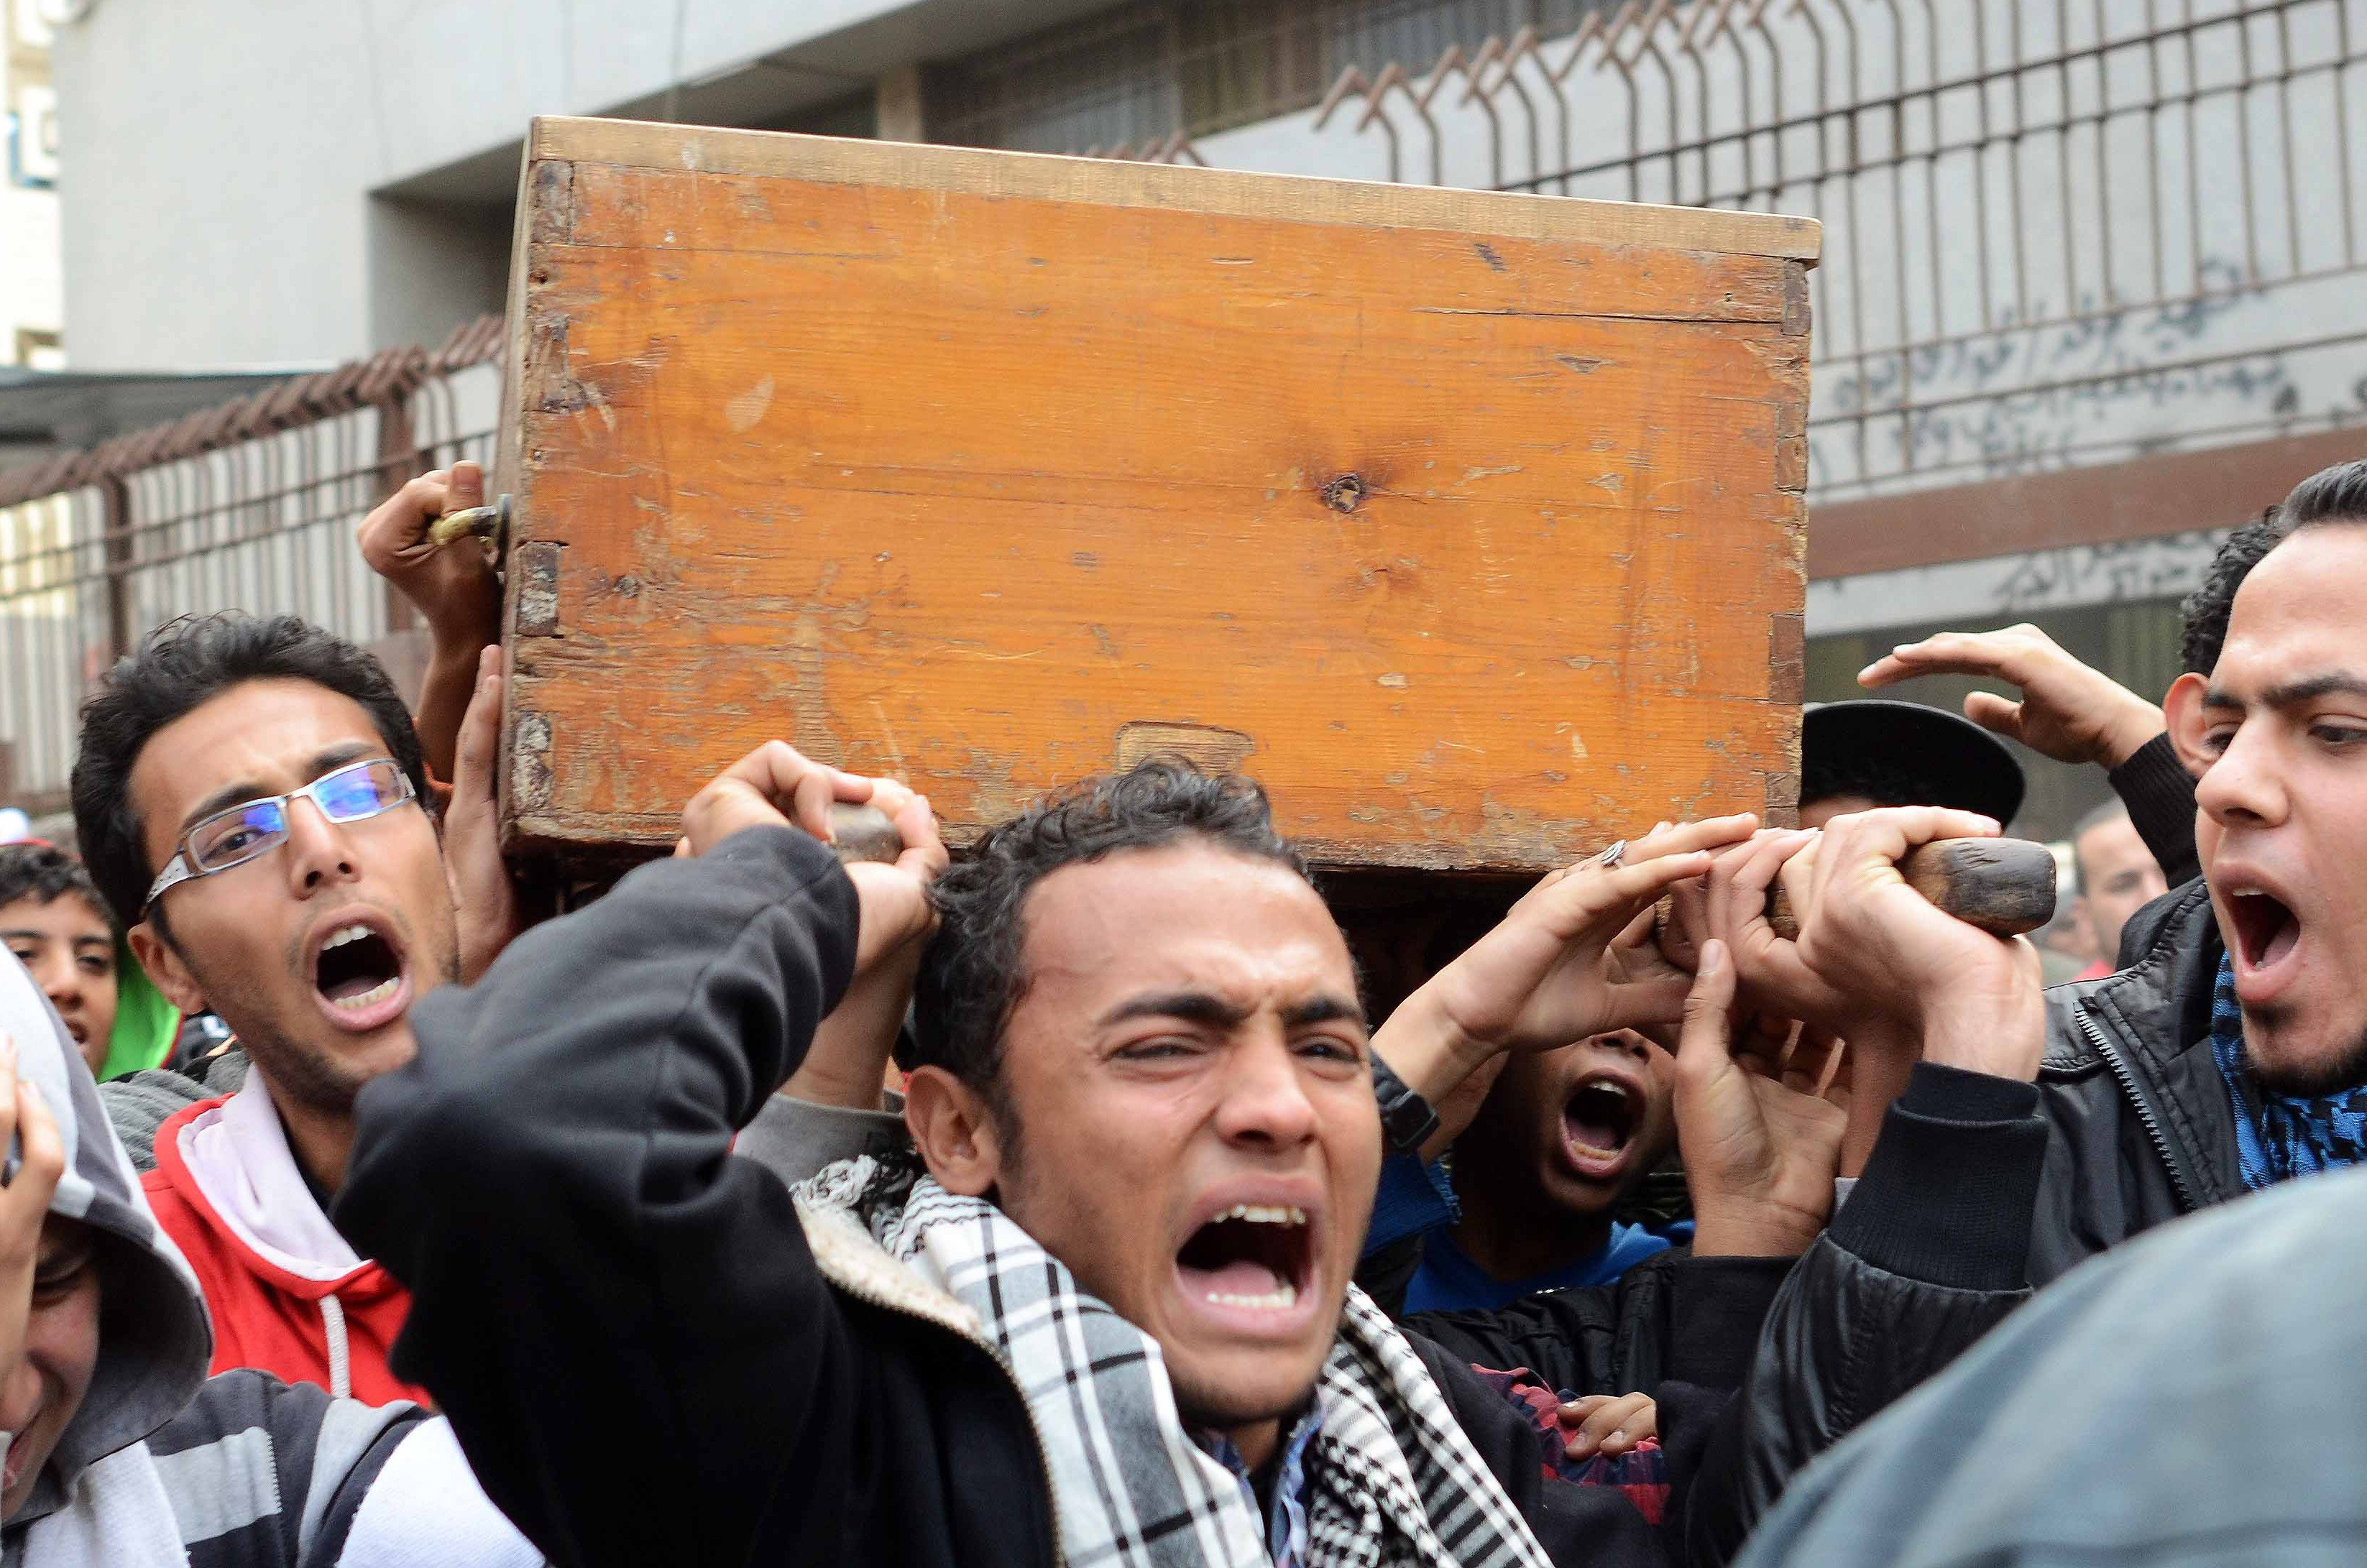 The coffin of one of the victims of clashes between supporters and opponents of Egypt's military is carried outside the Zinhom Morgue on January 26, 2014, outside Cairo, Egypt.  (AFP PHOTO MOHAMED EL-SHAHED)